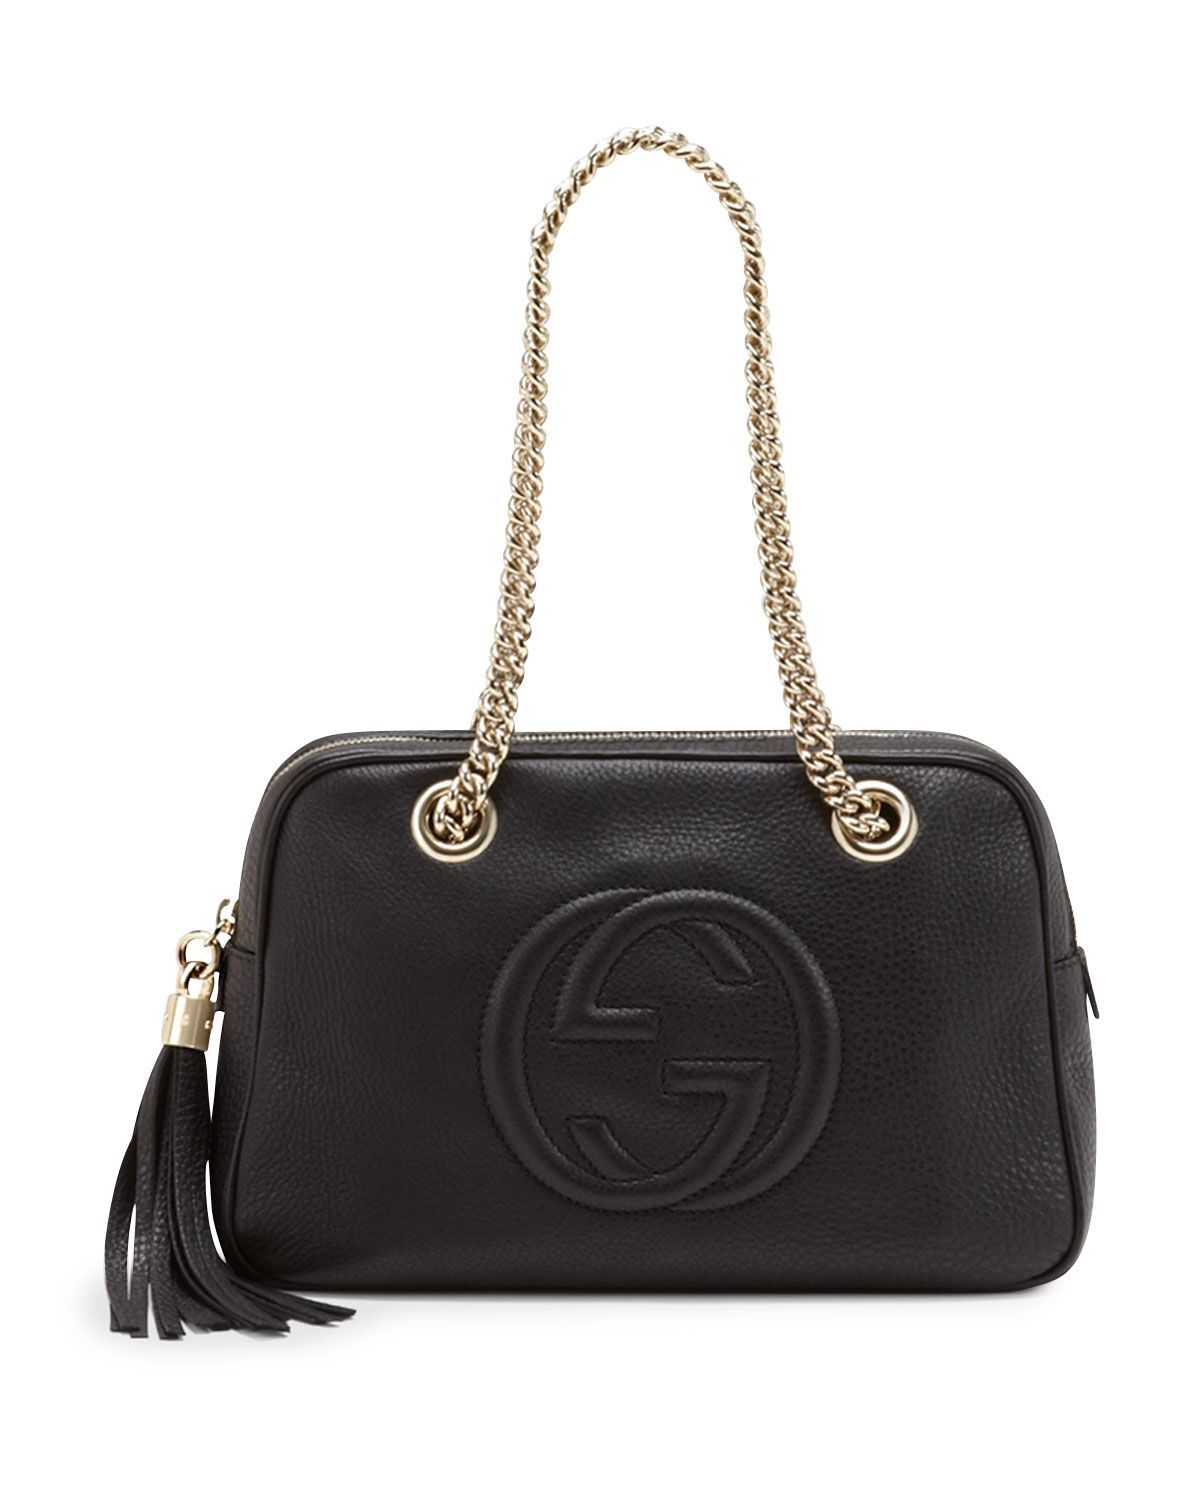 9a5ab24b8 Soho Leather Double-Chain-Strap Shoulder Bag, Black, Women's - Gucci